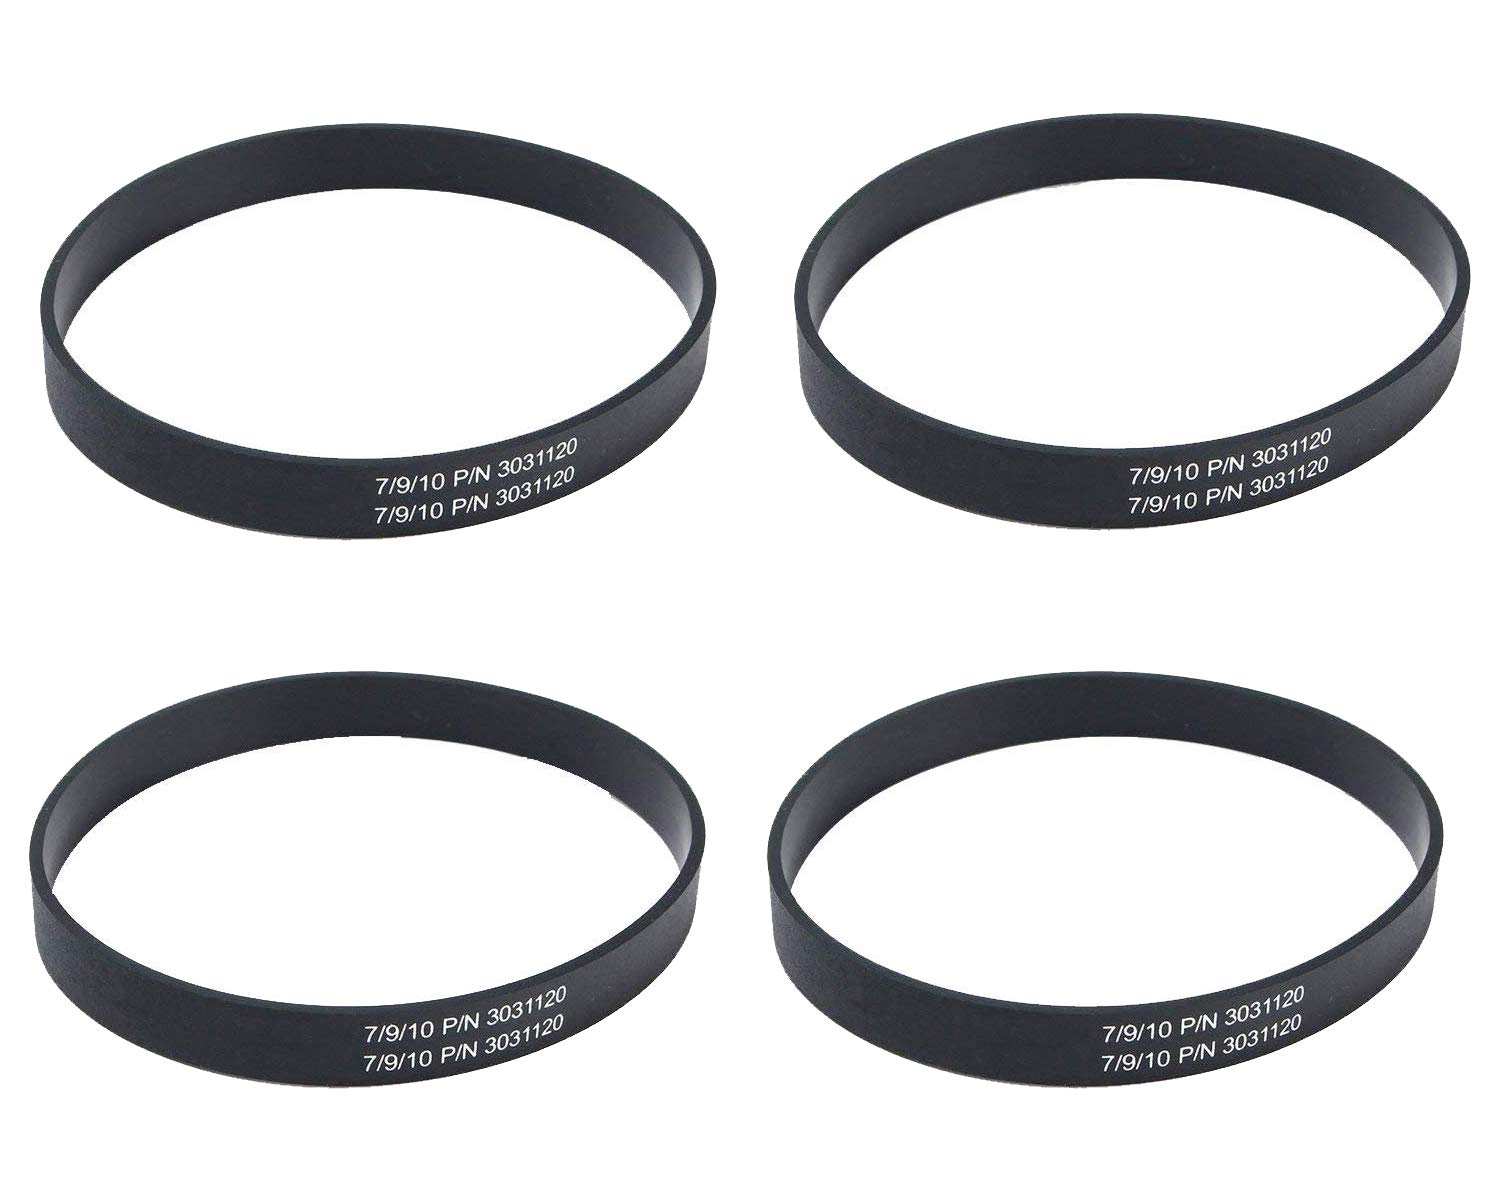 Poweka 3031120 Belts Fits for Bissell Style 7/9/10 12/14/16 p/n 3031120 Vacuum Belt (4 Packs) - Replace Part Number 32074 203-1093